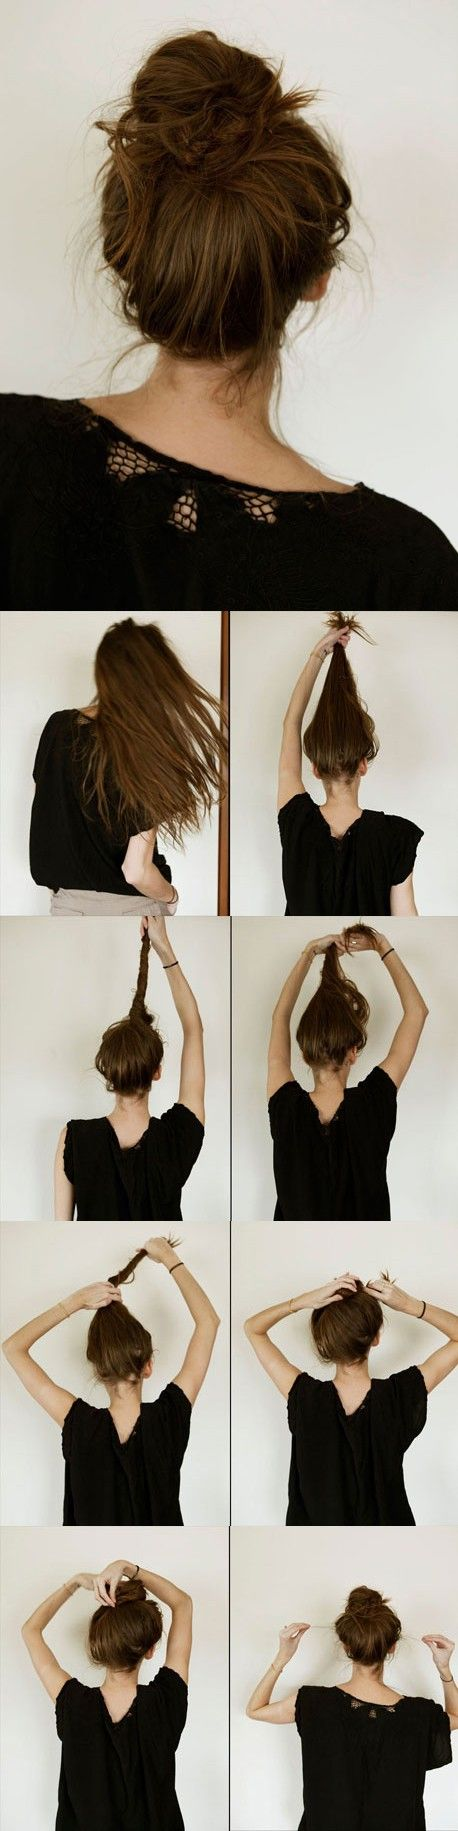 Messy bun for long hair. I've needed this, but... I'm a little confused at those last few steps...